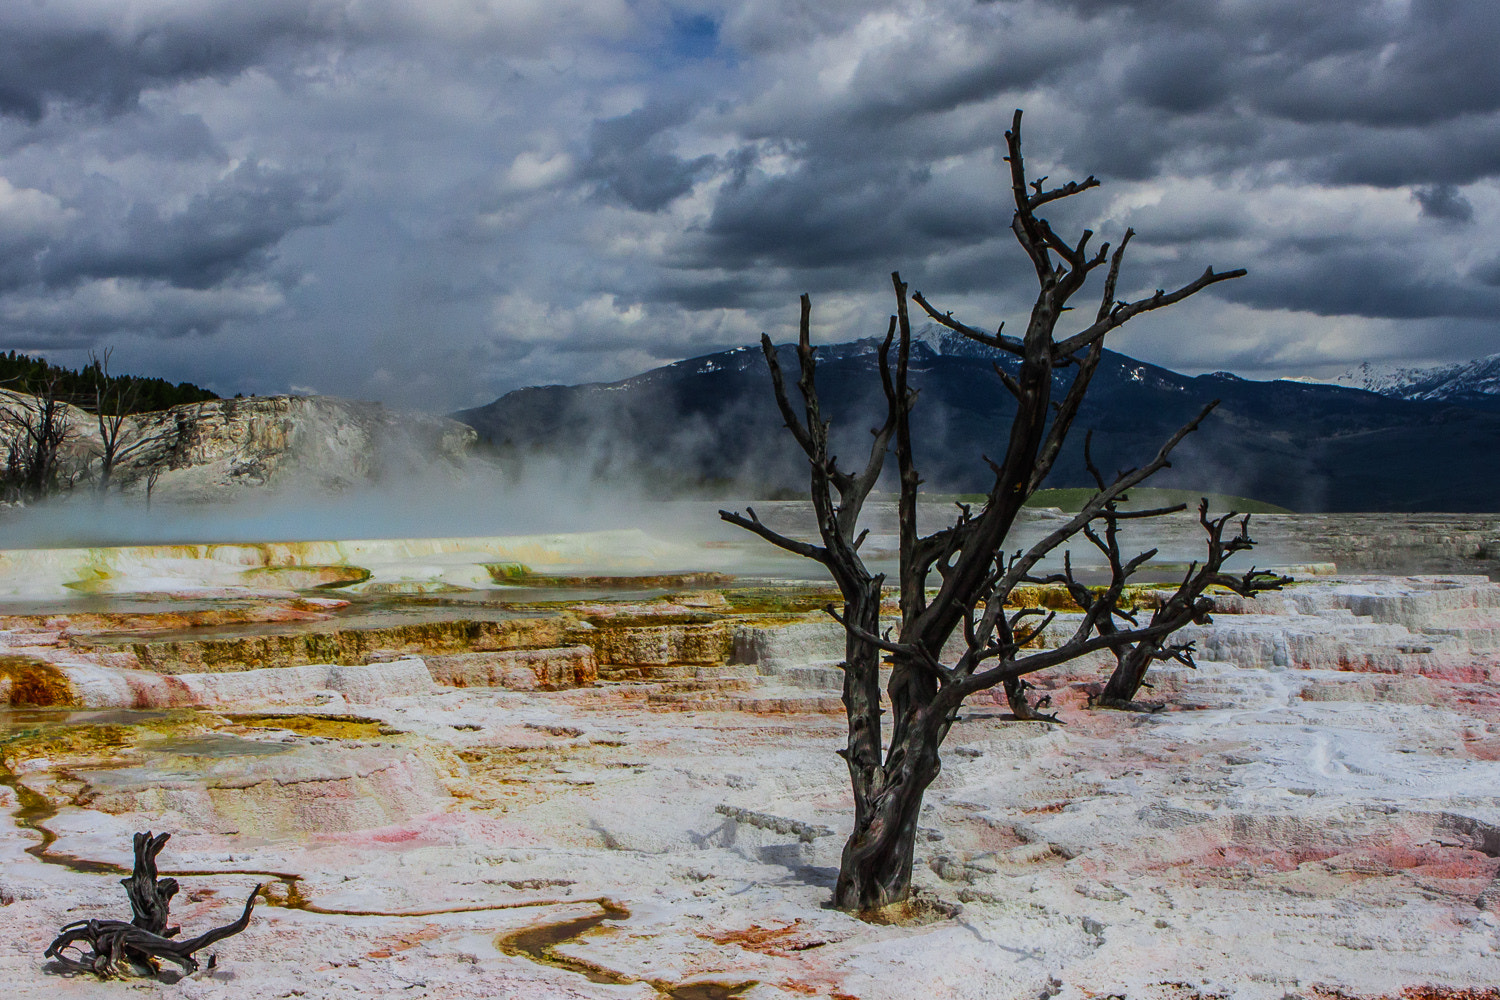 Photograph Mammoth Hot Springs by Michael Backes on 500px